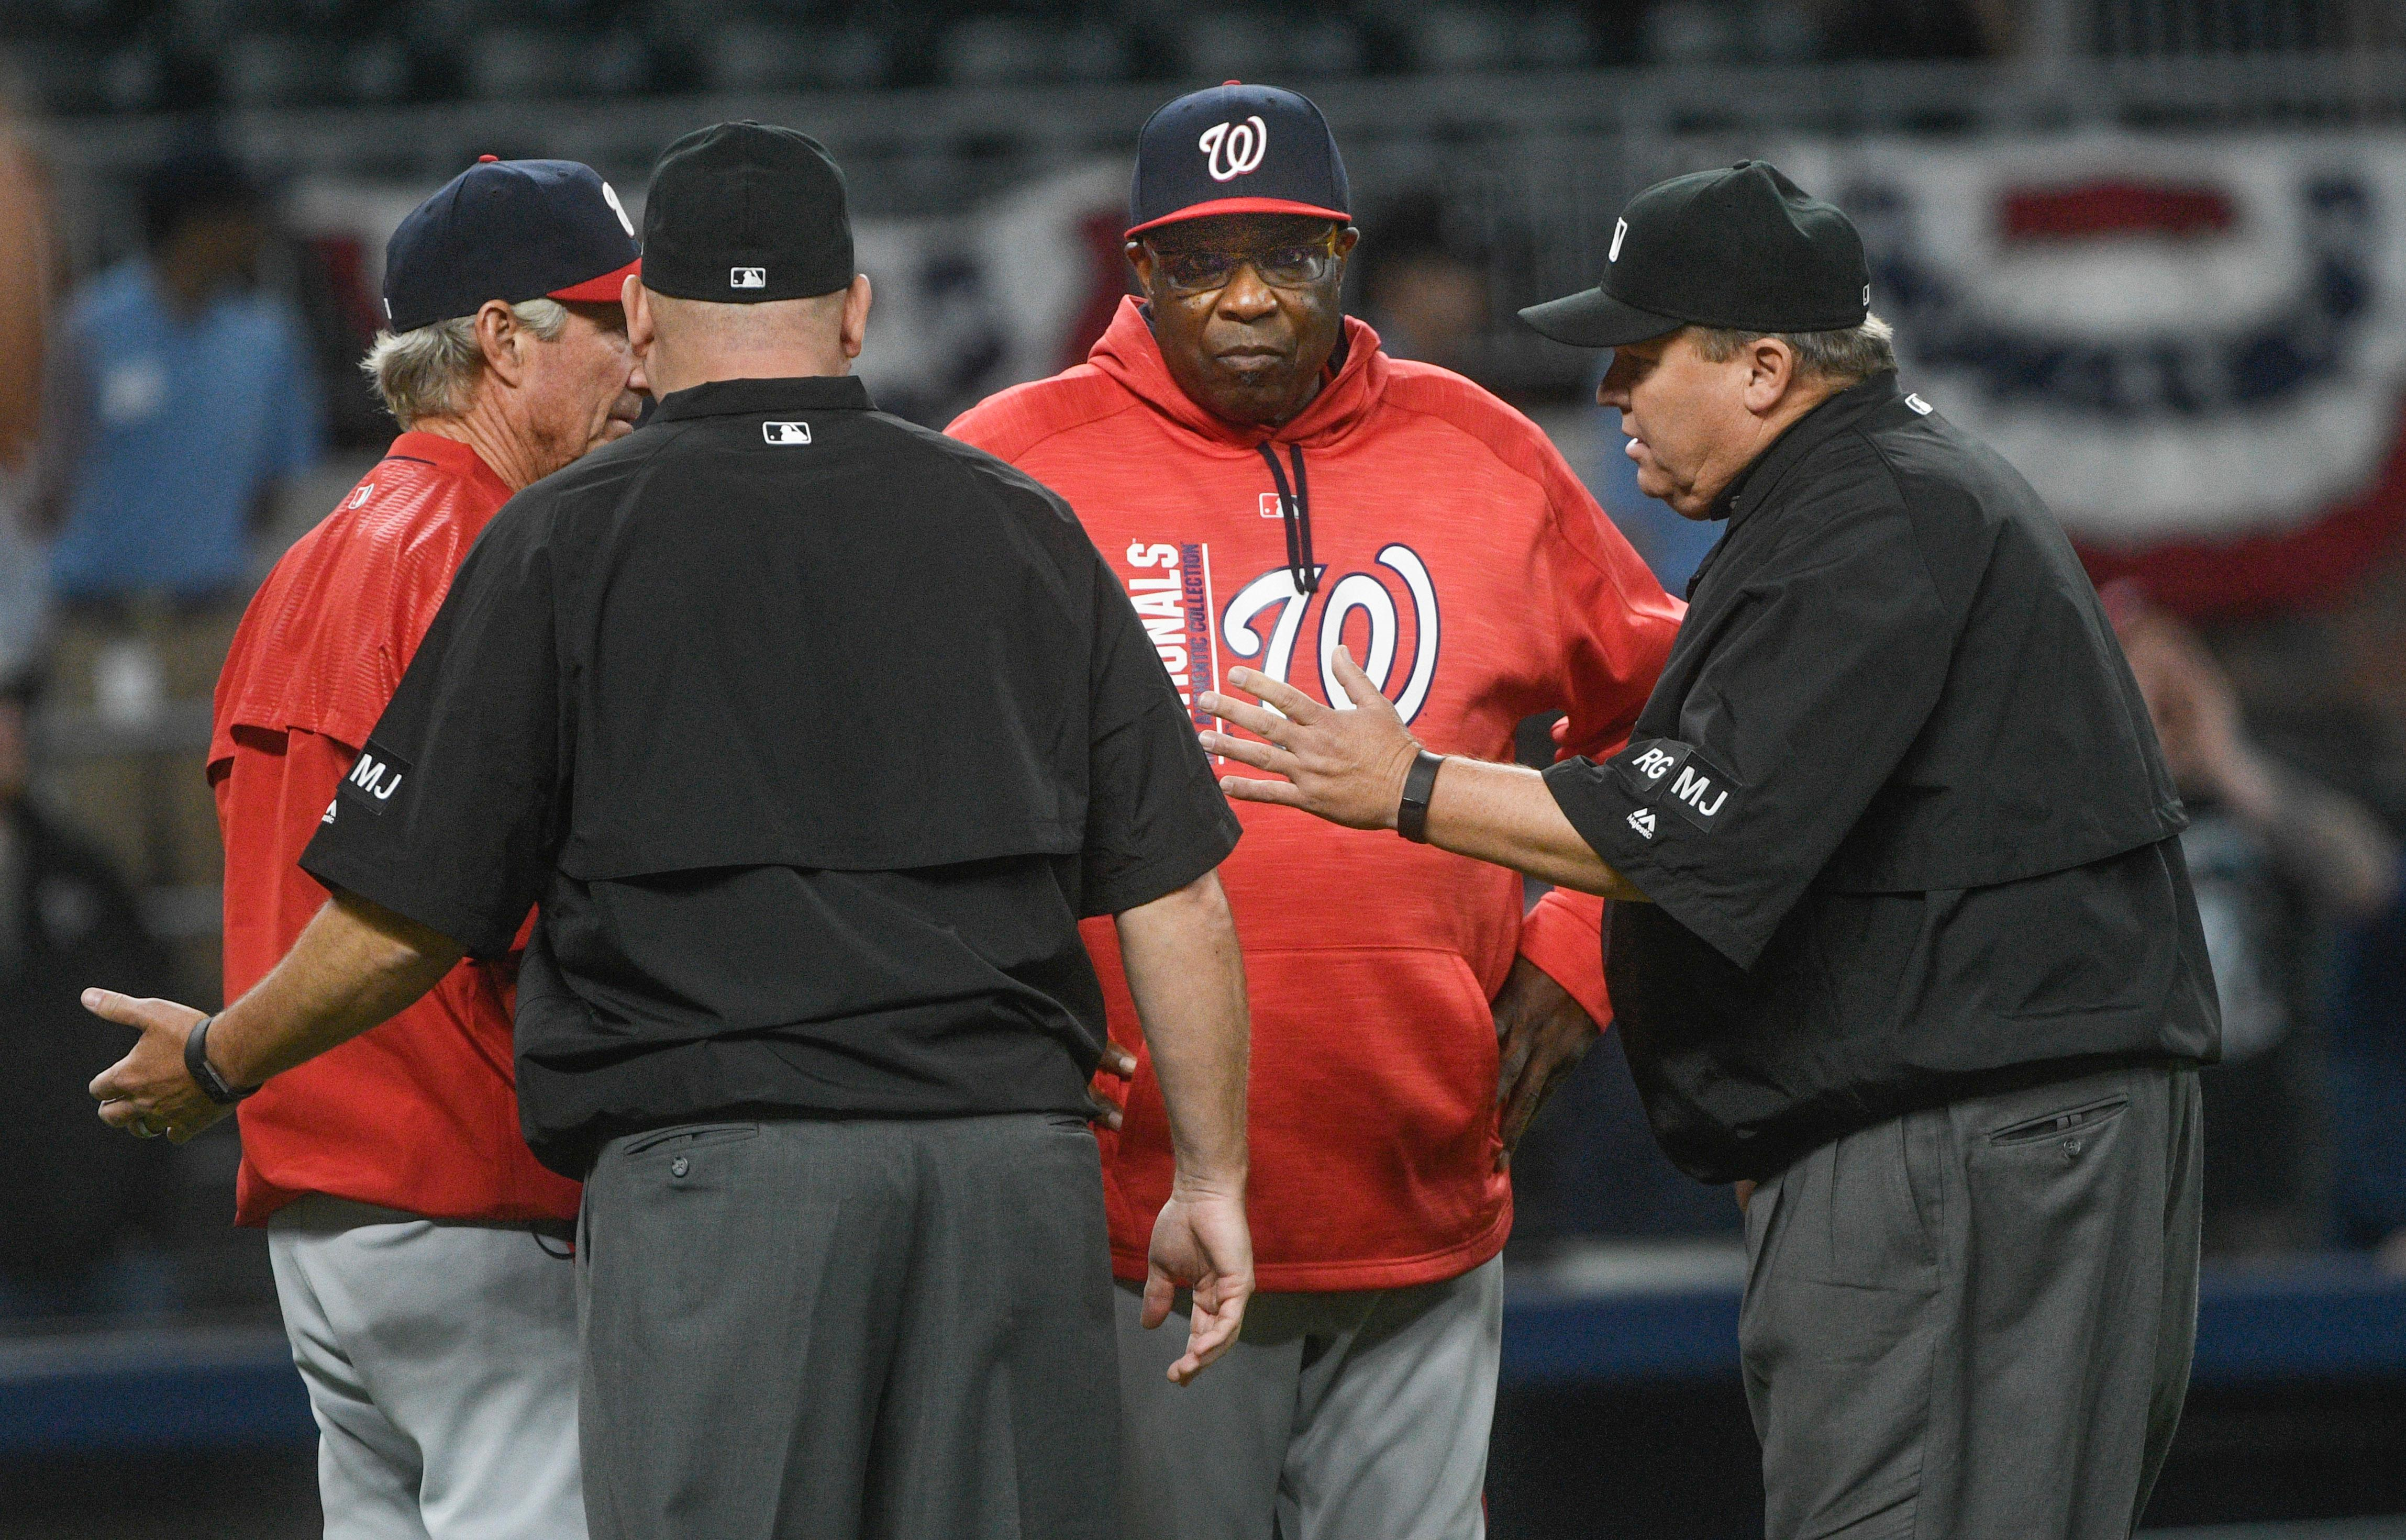 Umpires tell Washington Nationals manager Dusty Baker, second from right, and bench coach Chris Speier, left, the game was not over after the two and players came onto the field to celebrate during the ninth inning of a baseball game against the Atlanta Braves, Tuesday, April 18, 2017, in Atlanta. Washington won 3-1. (AP Photo/John Amis)